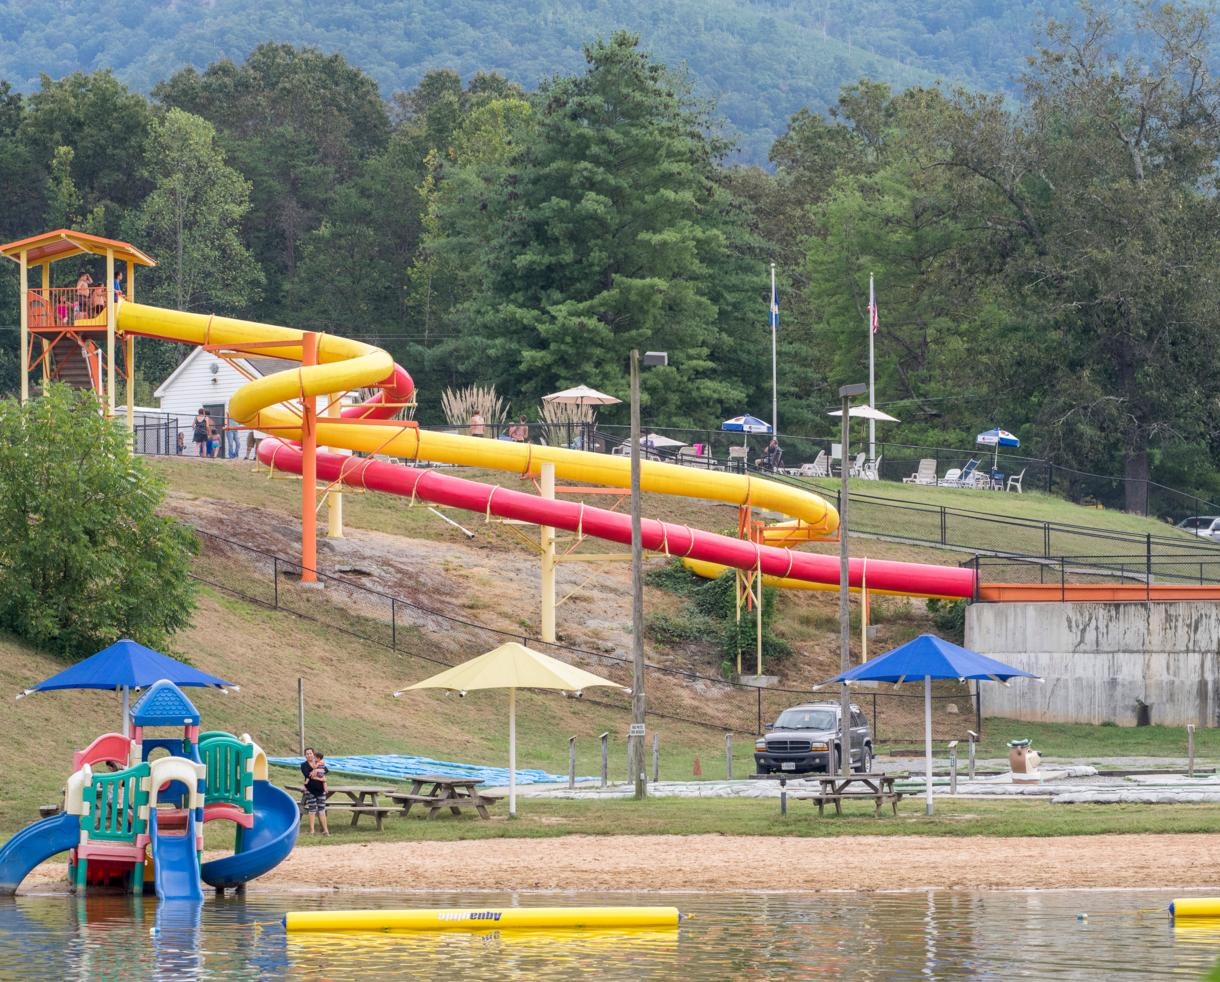 $69+ for 2-Night Family Getaway at Yogi Bear's Jellystone Park - NATURAL BRIDGE, VA